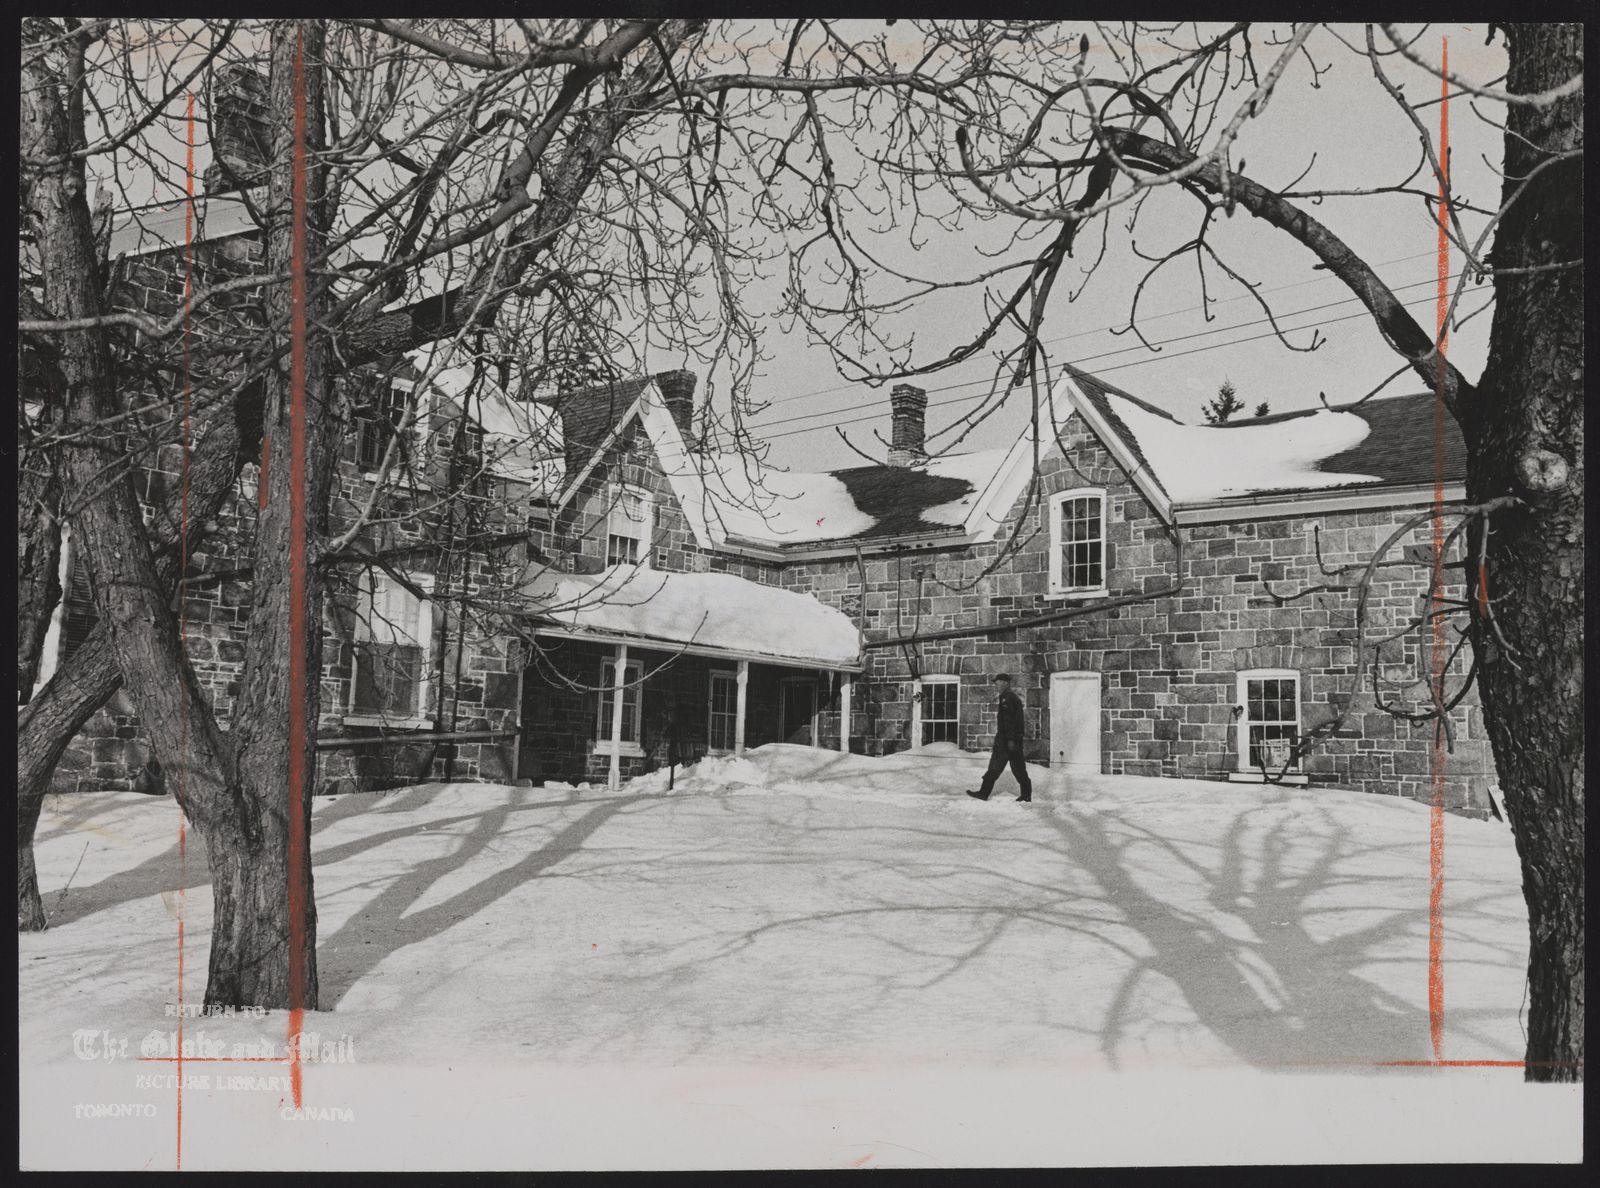 BROUGHAM (Hamlet) (Ontario) (House owned by grandson of original builder John Milles house will be expropriated for new Pickering airport) house dates back to 1855)